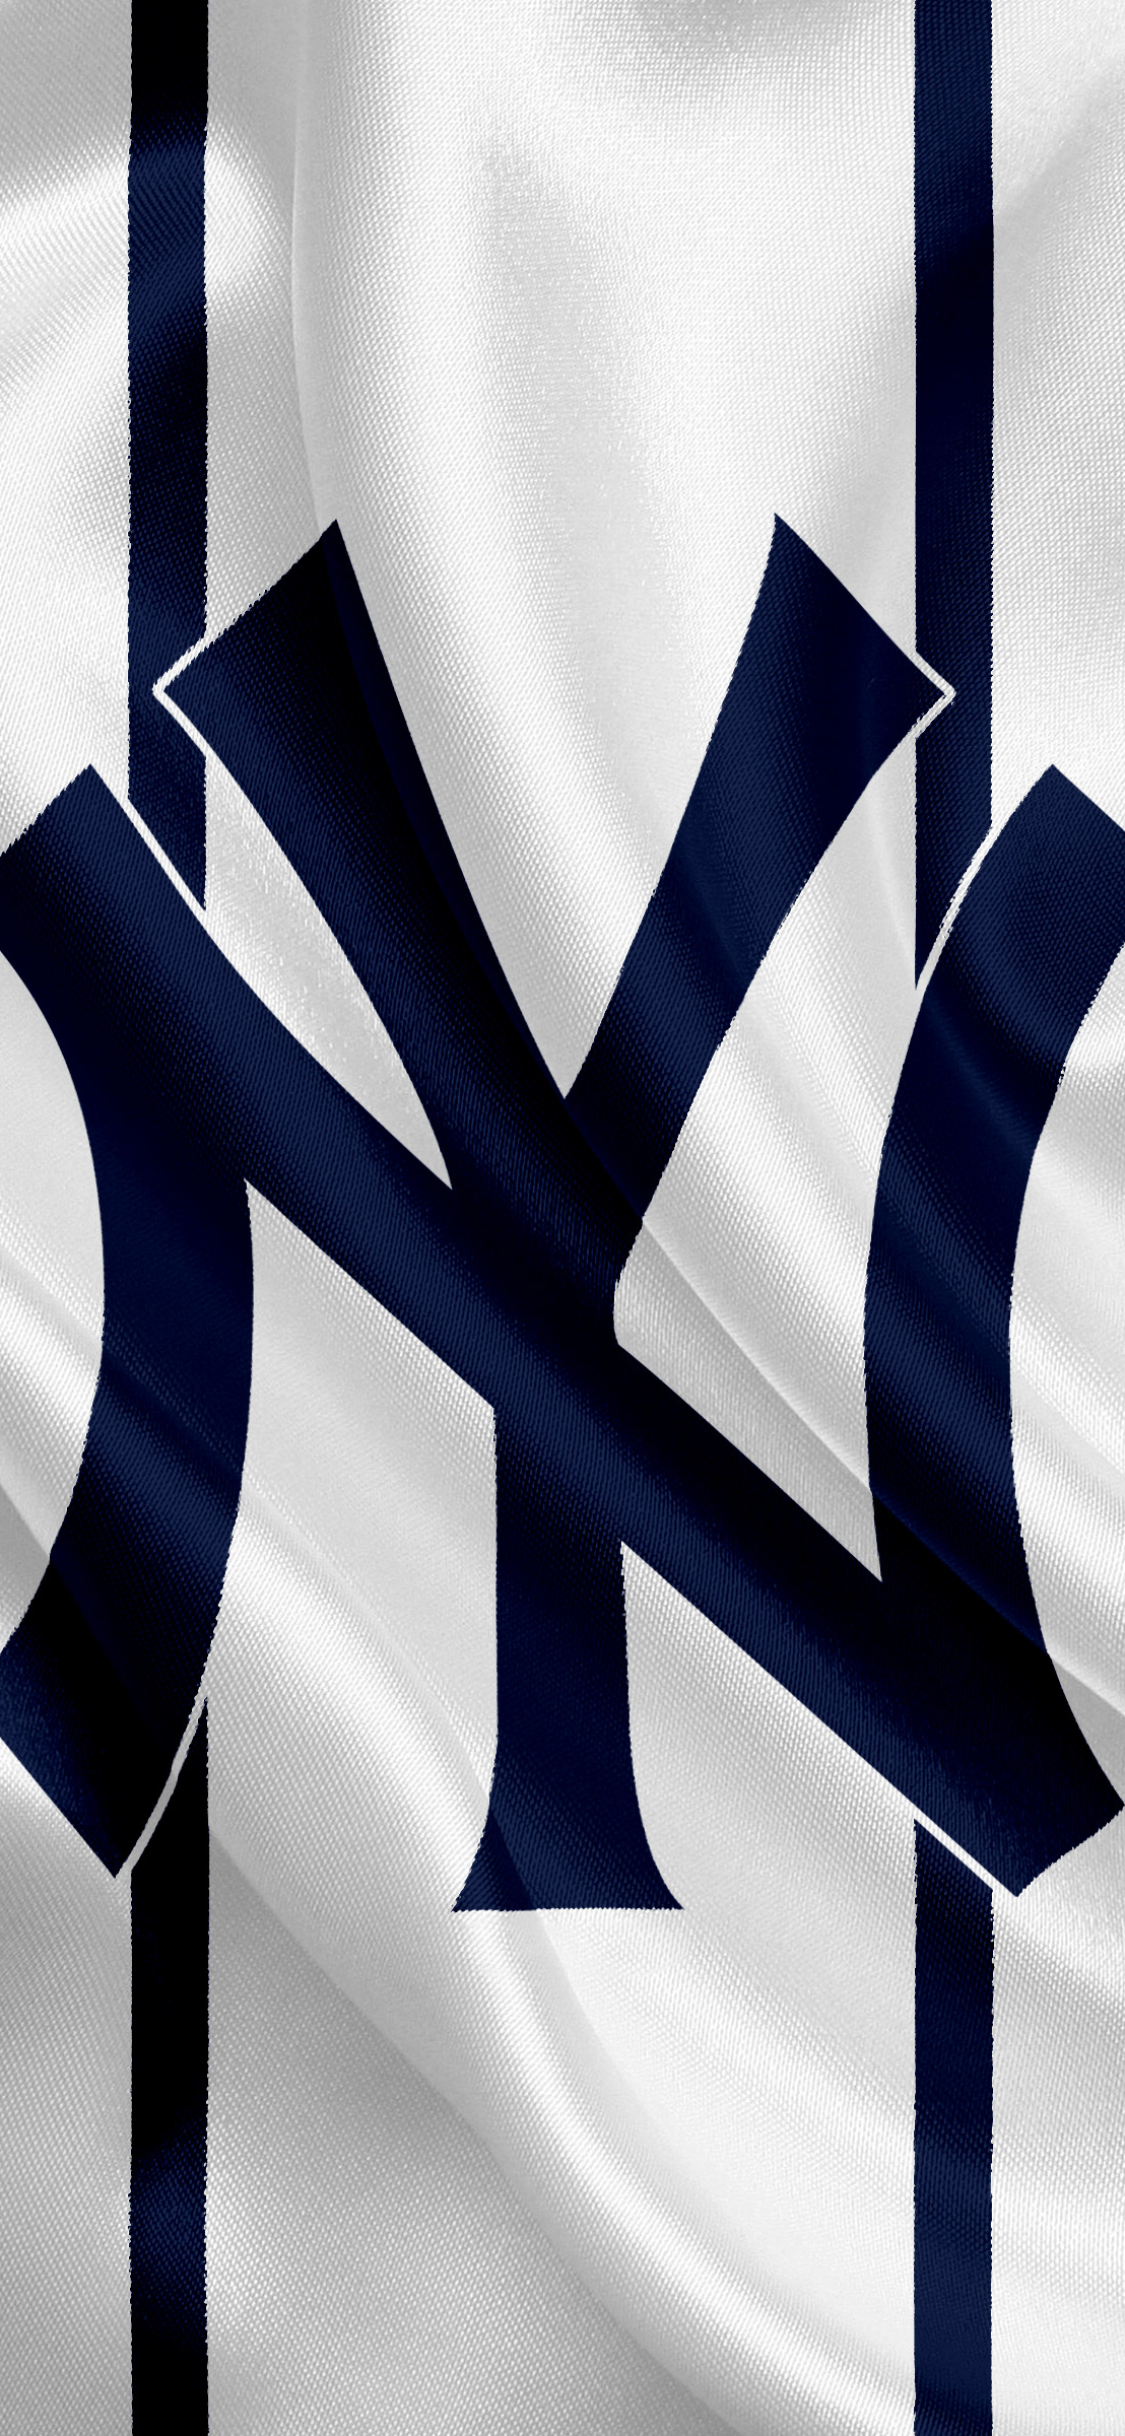 Sports New York Yankees 1125x2436 Wallpaper Id 778509 Mobile